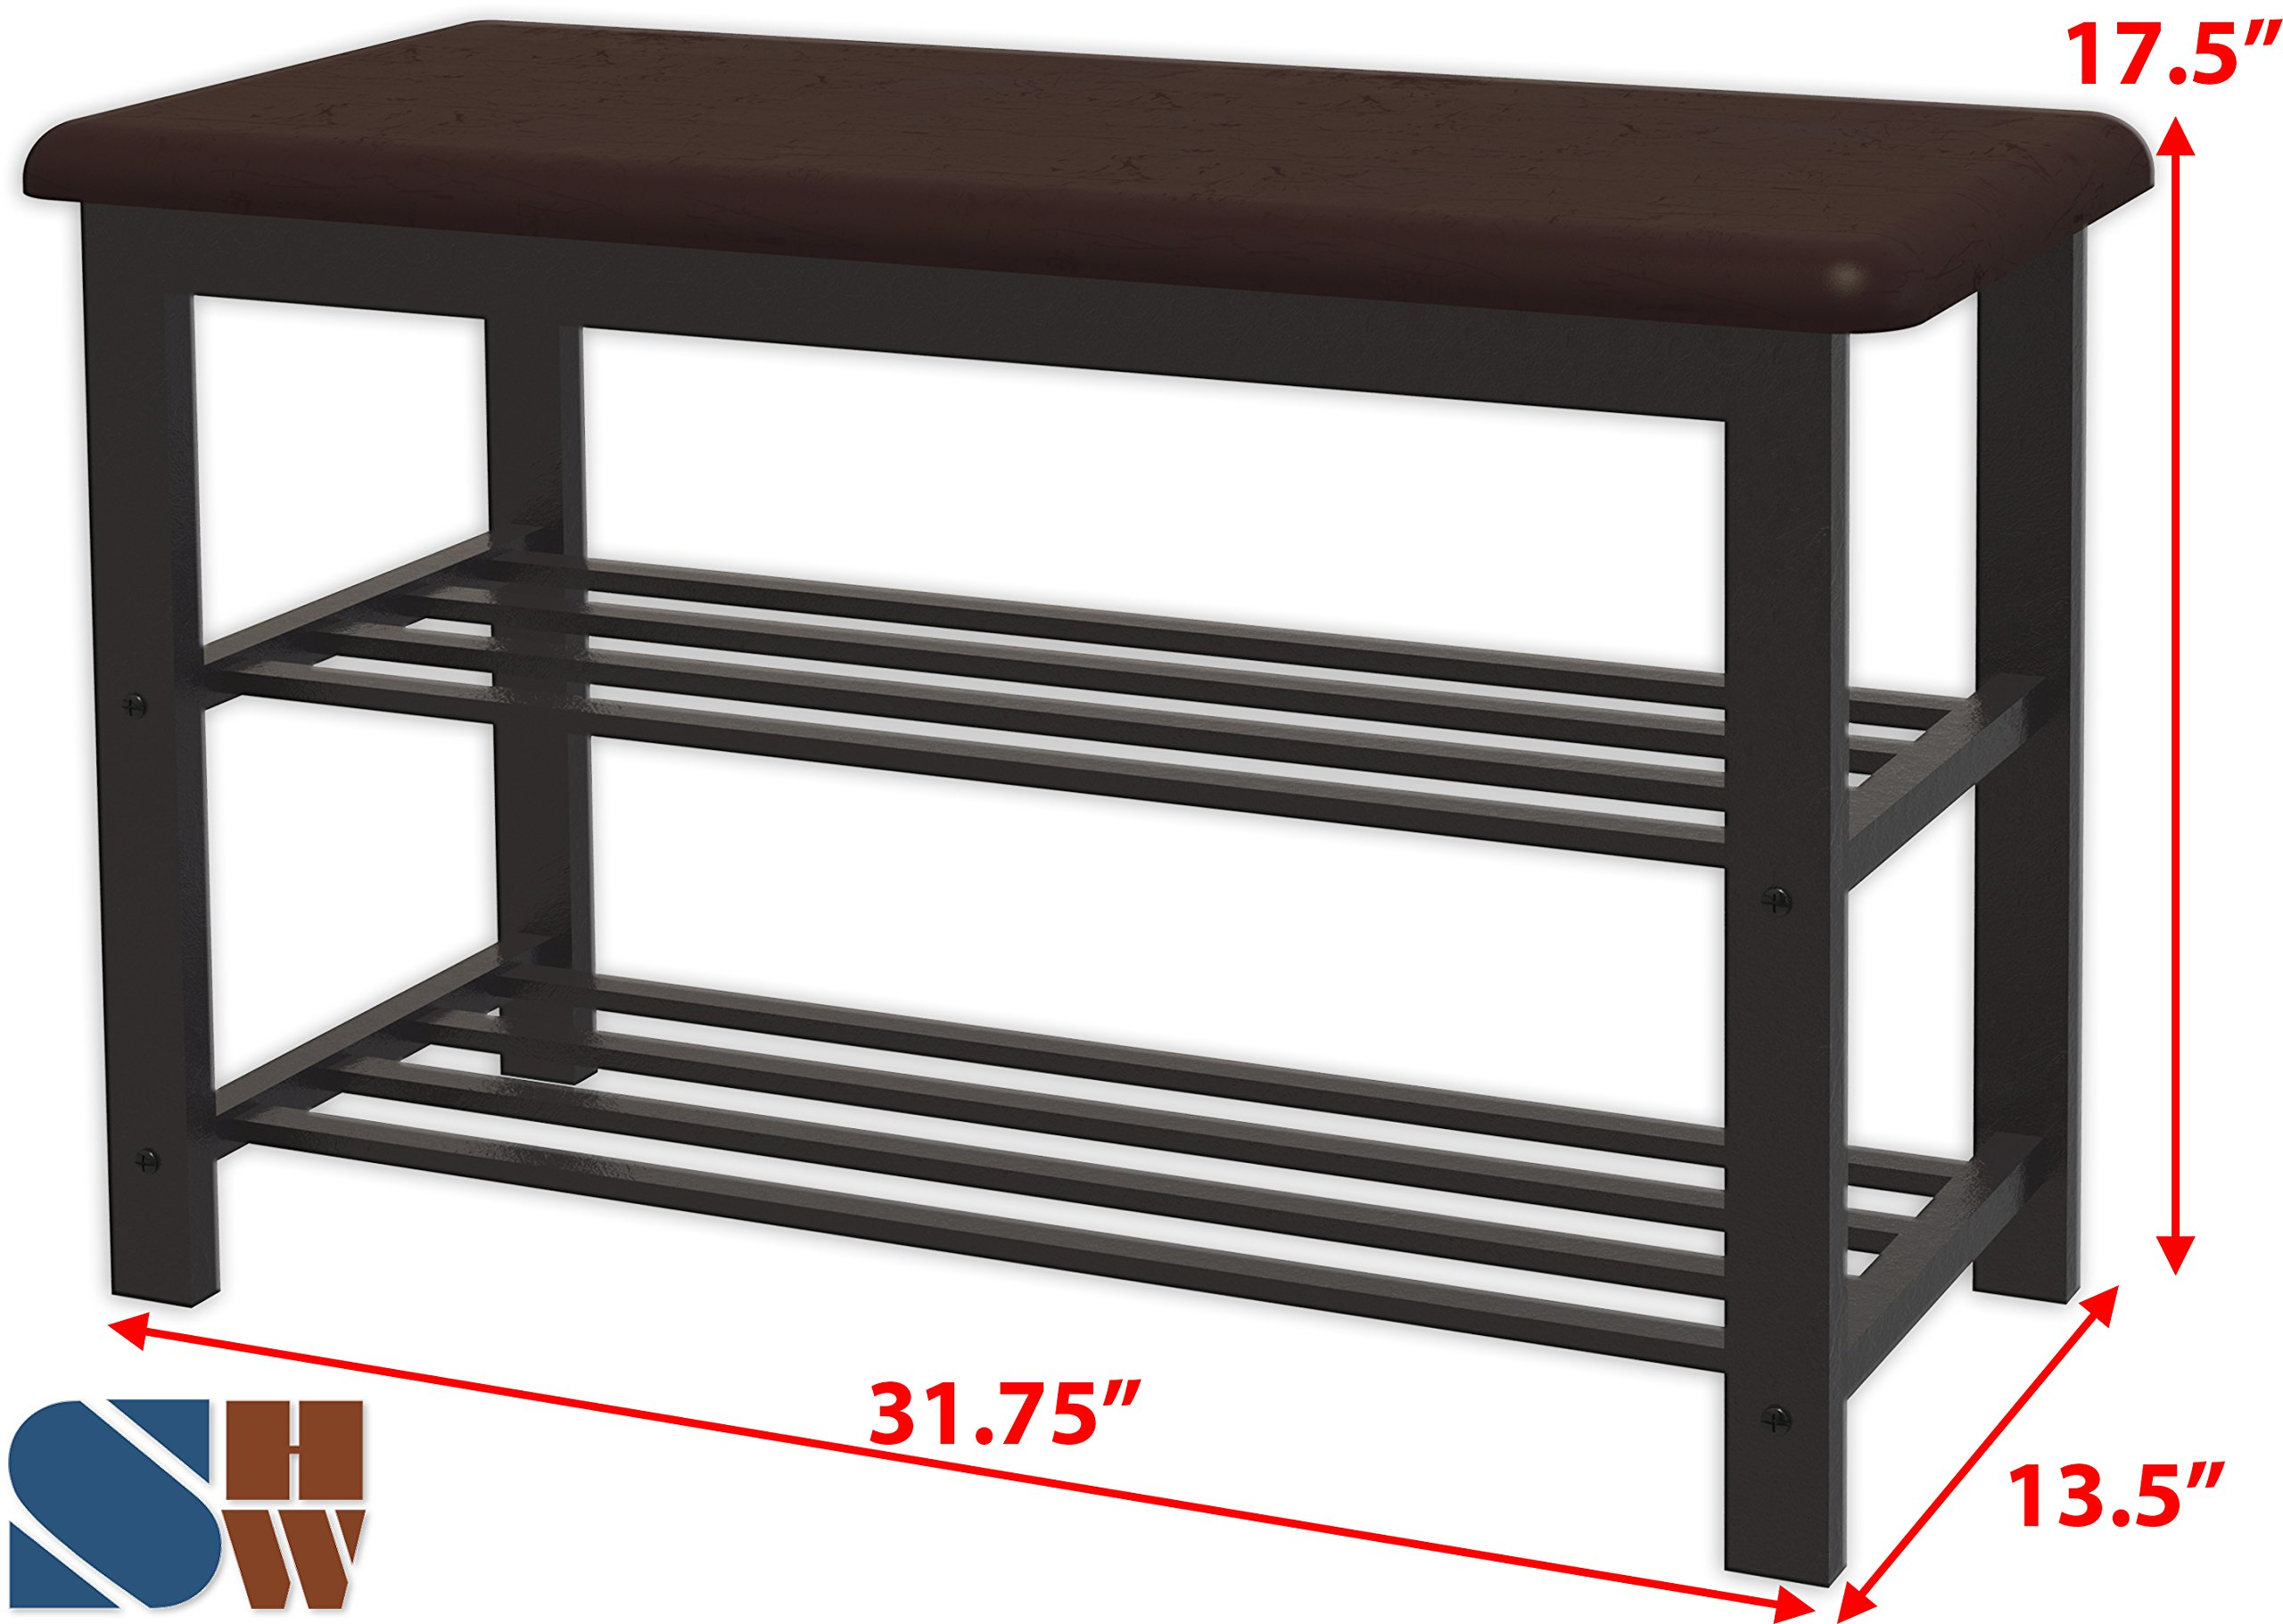 Simple Houseware Faux Leather Top Shoe Bench for Entryway Shoes Storage Organizer Rack by Simple Houseware (Image #2)